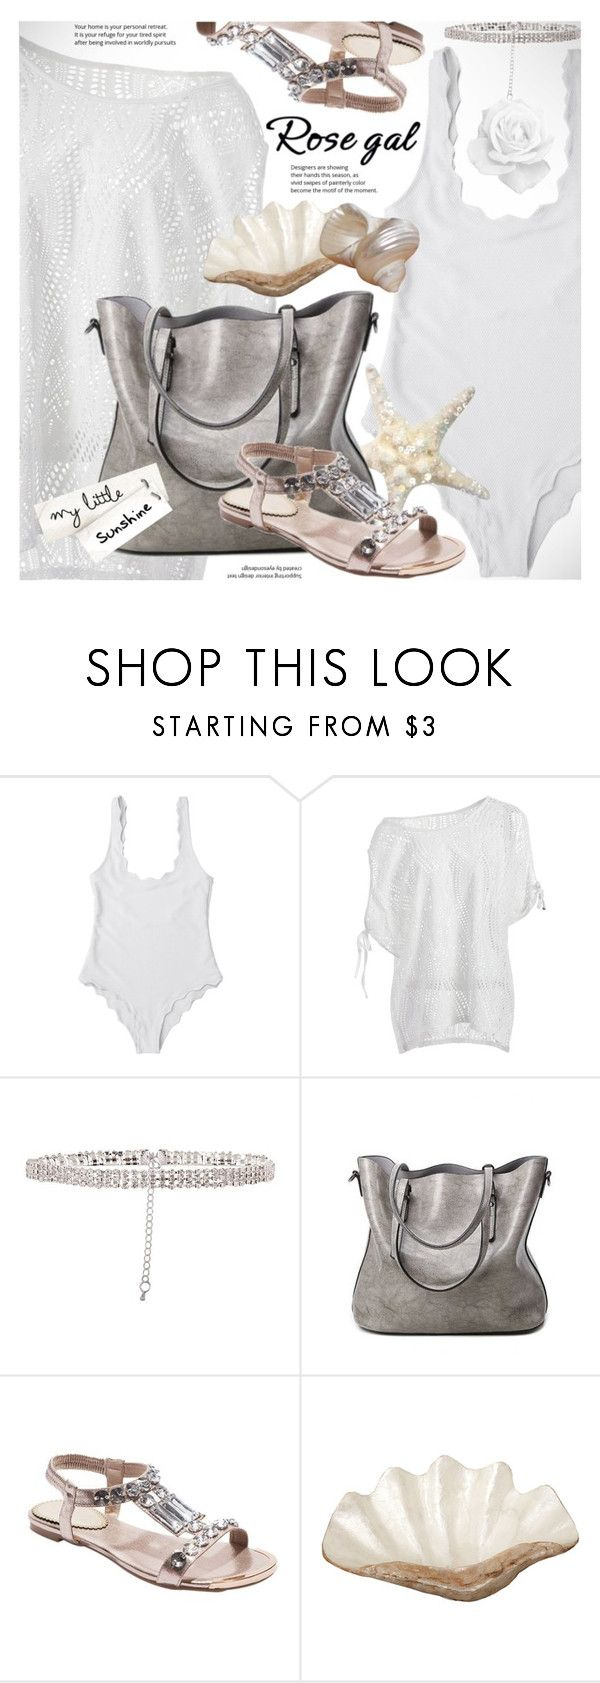 """""""ROSEGAL lovely white scalloped swimsuit"""" by vn1ta ❤ liked on Polyvore featuring Pearl Dragon"""